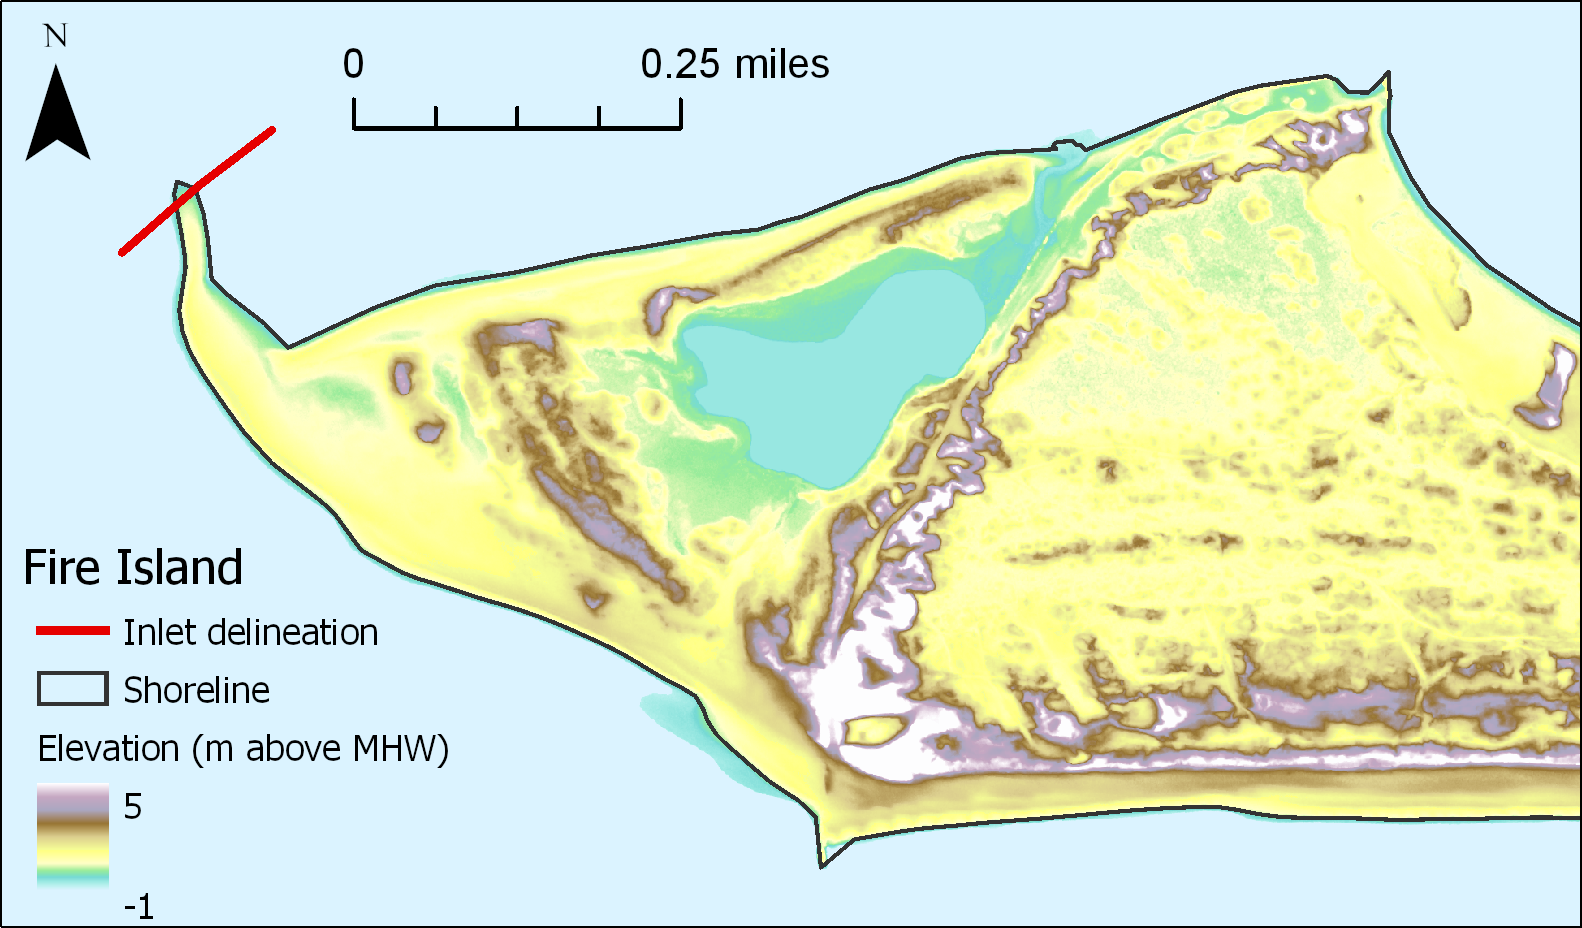 Example shoreline polygon (black) and inlet delineation (red line) overlain on the DEM.